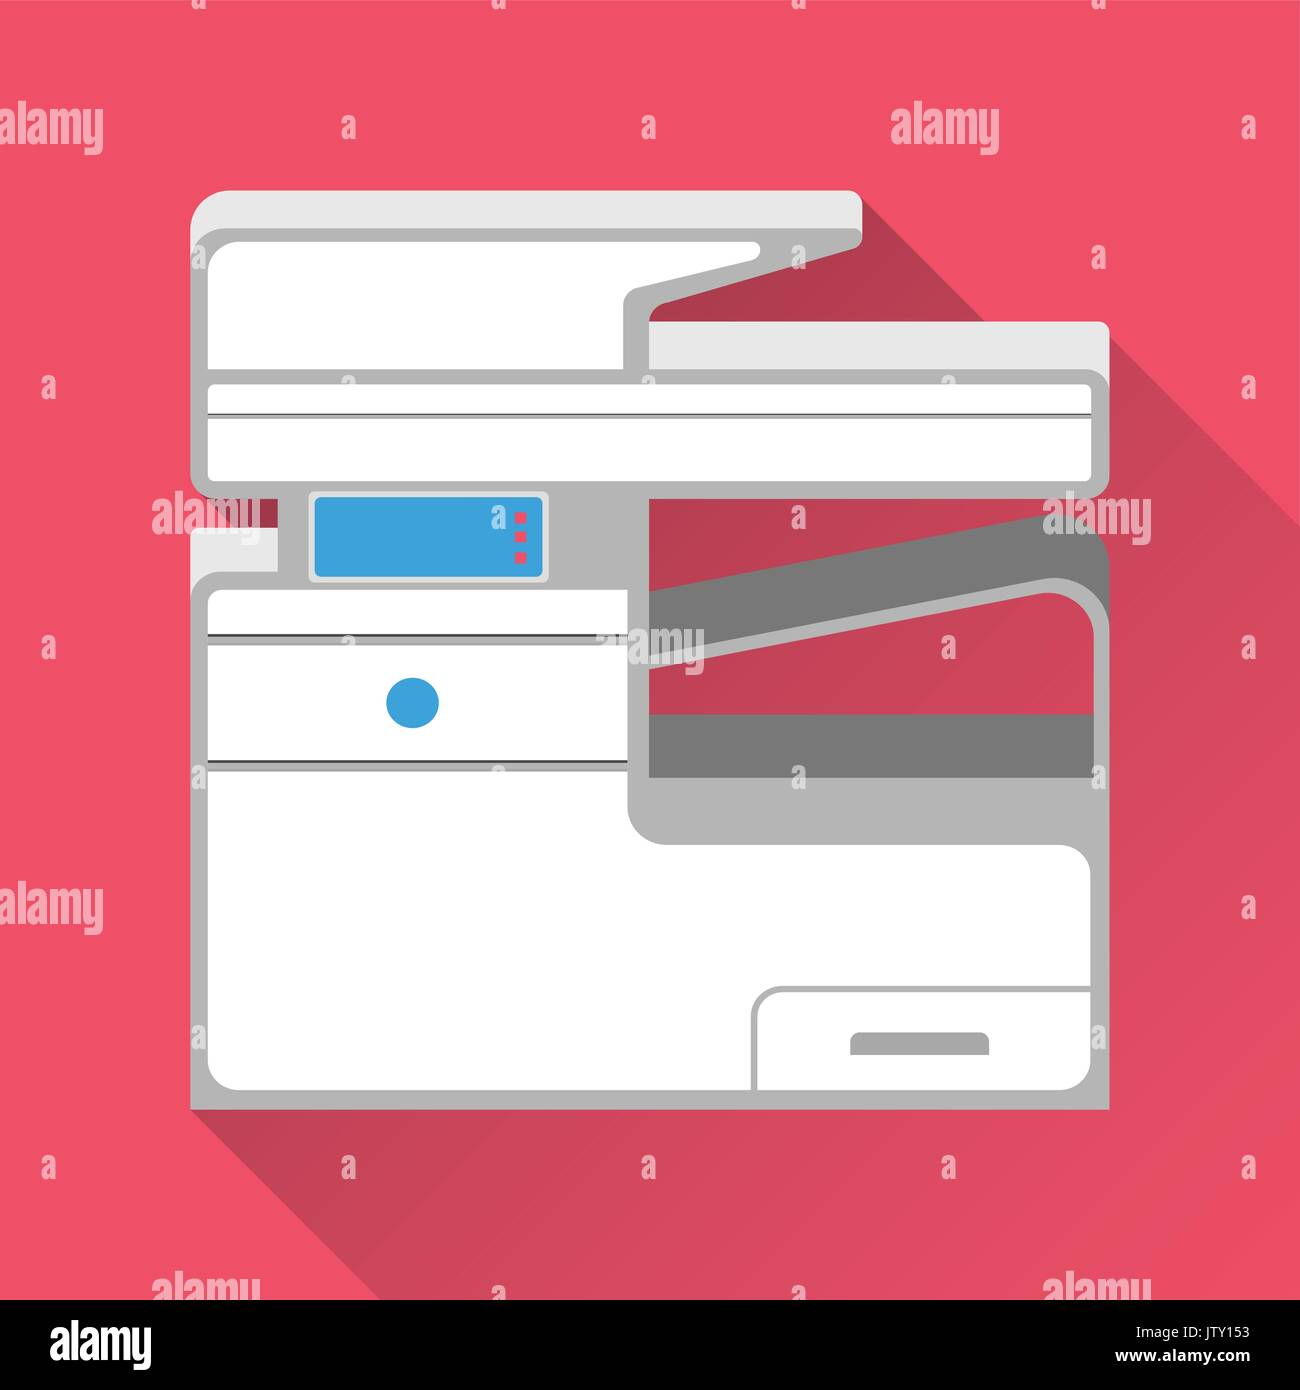 Multifunction Printer and Copier. Flat design. Vector illustration. - Stock Image